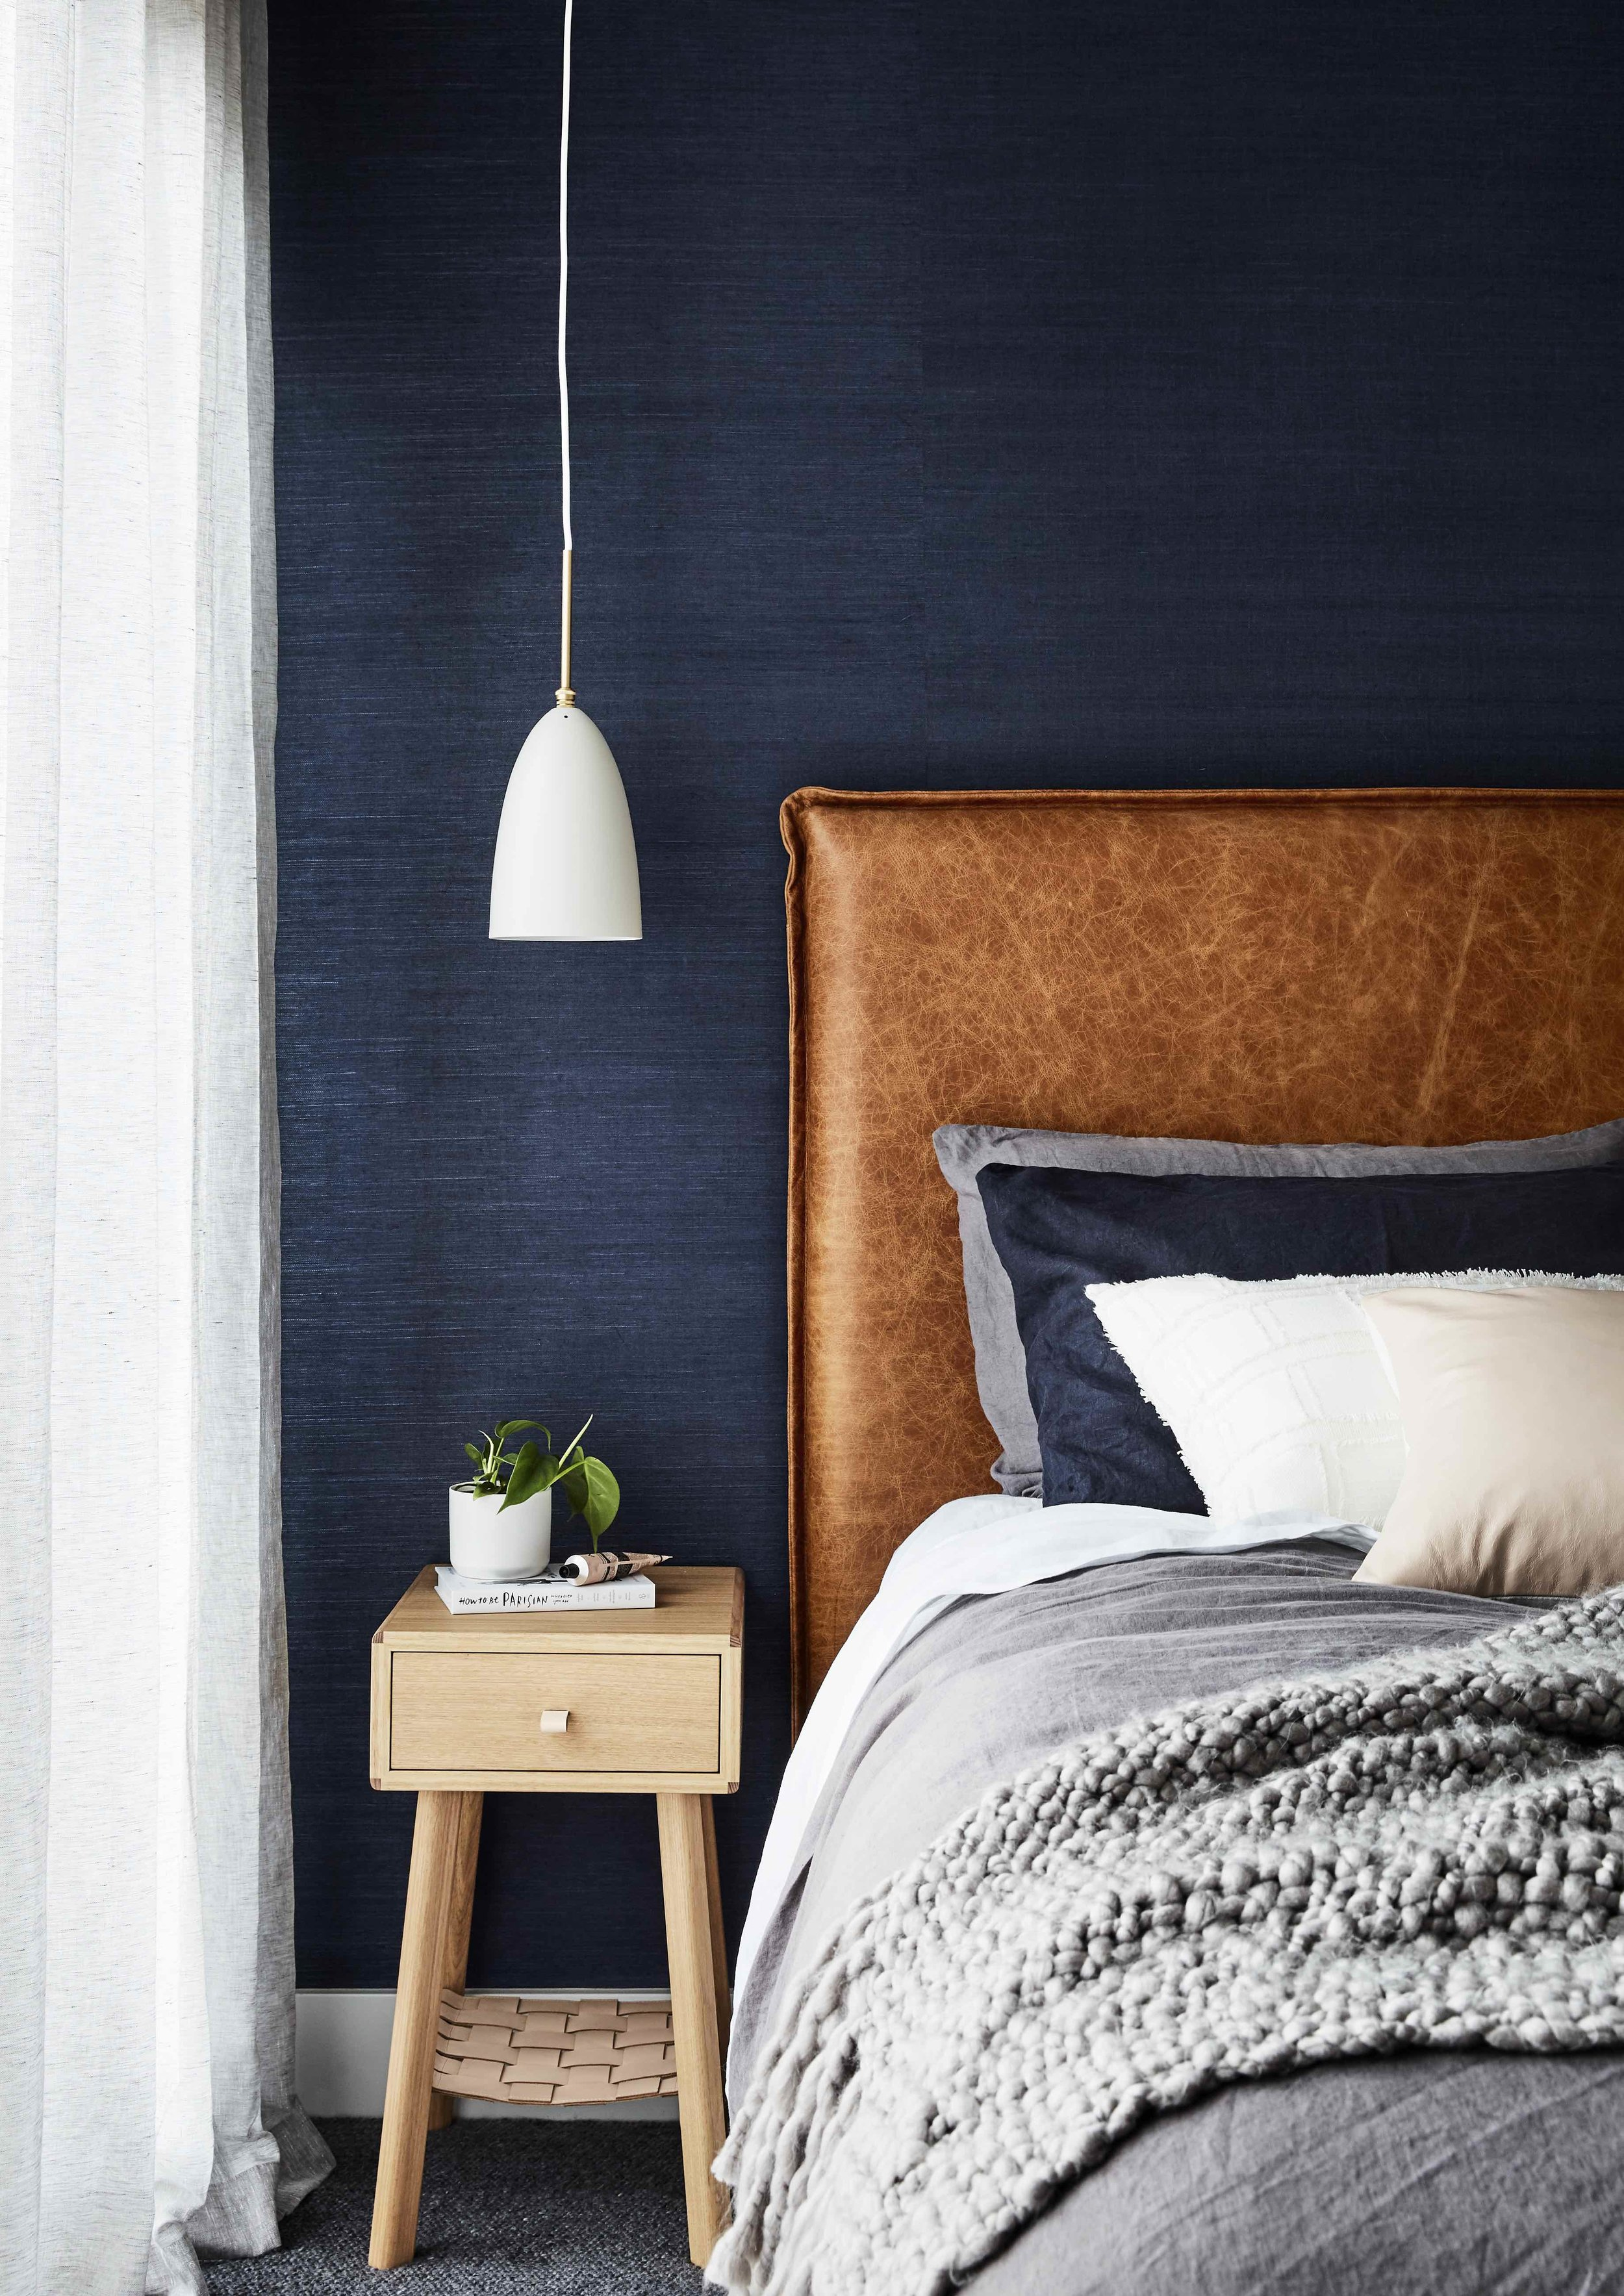 Image Credits: Design and Styling - Sarah Elshaug for  Maitland Street Interiors . Photographer -  Caitlin Mills